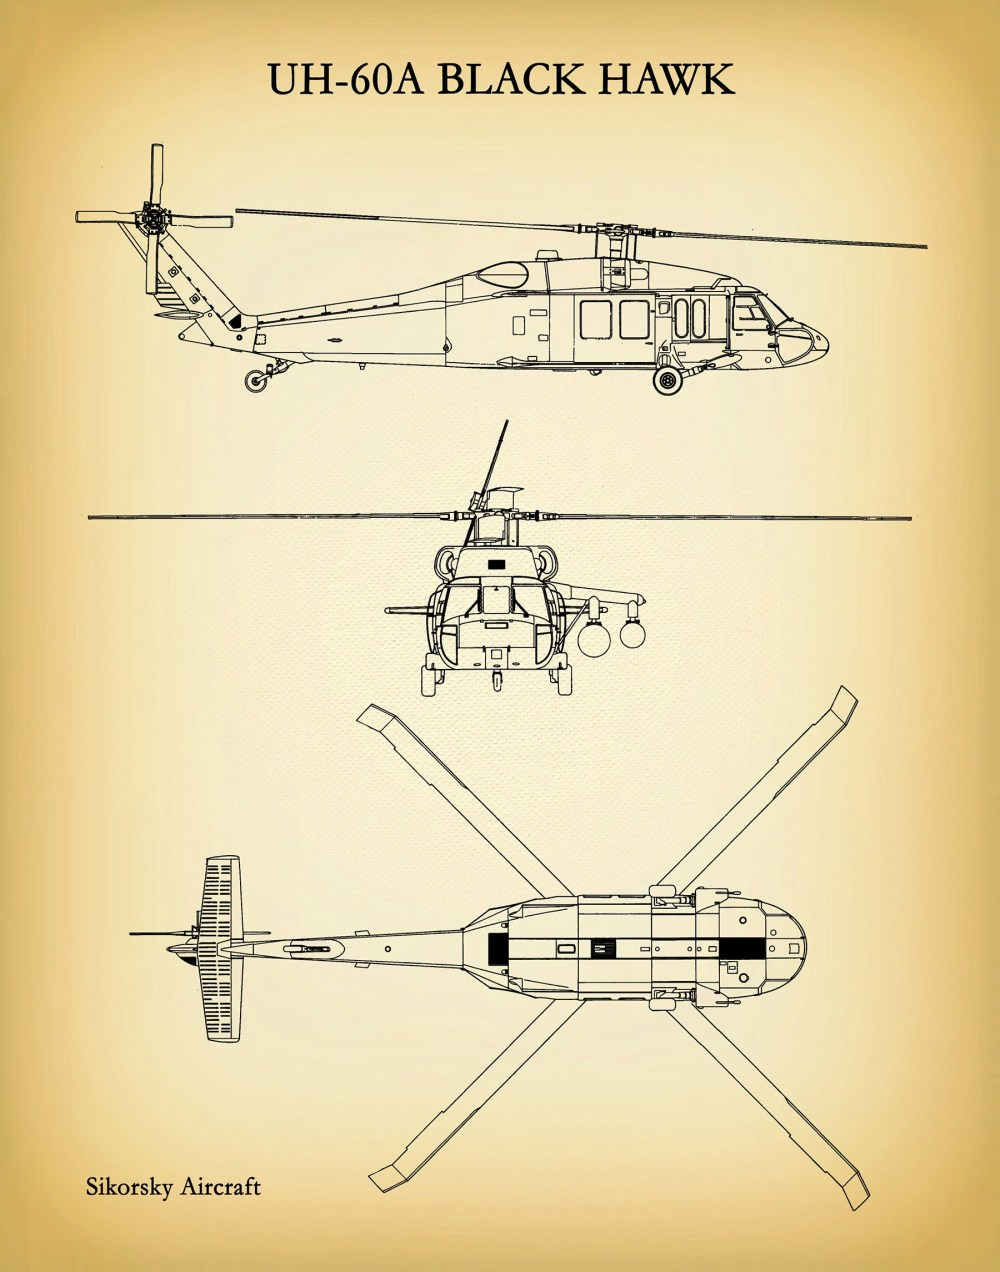 medium resolution of uh 60a black hawk helicopter art print sikorsky uh 60a helicopter blueprint chopper pilot gift sikorsky uh 60 chopper helicopter decor